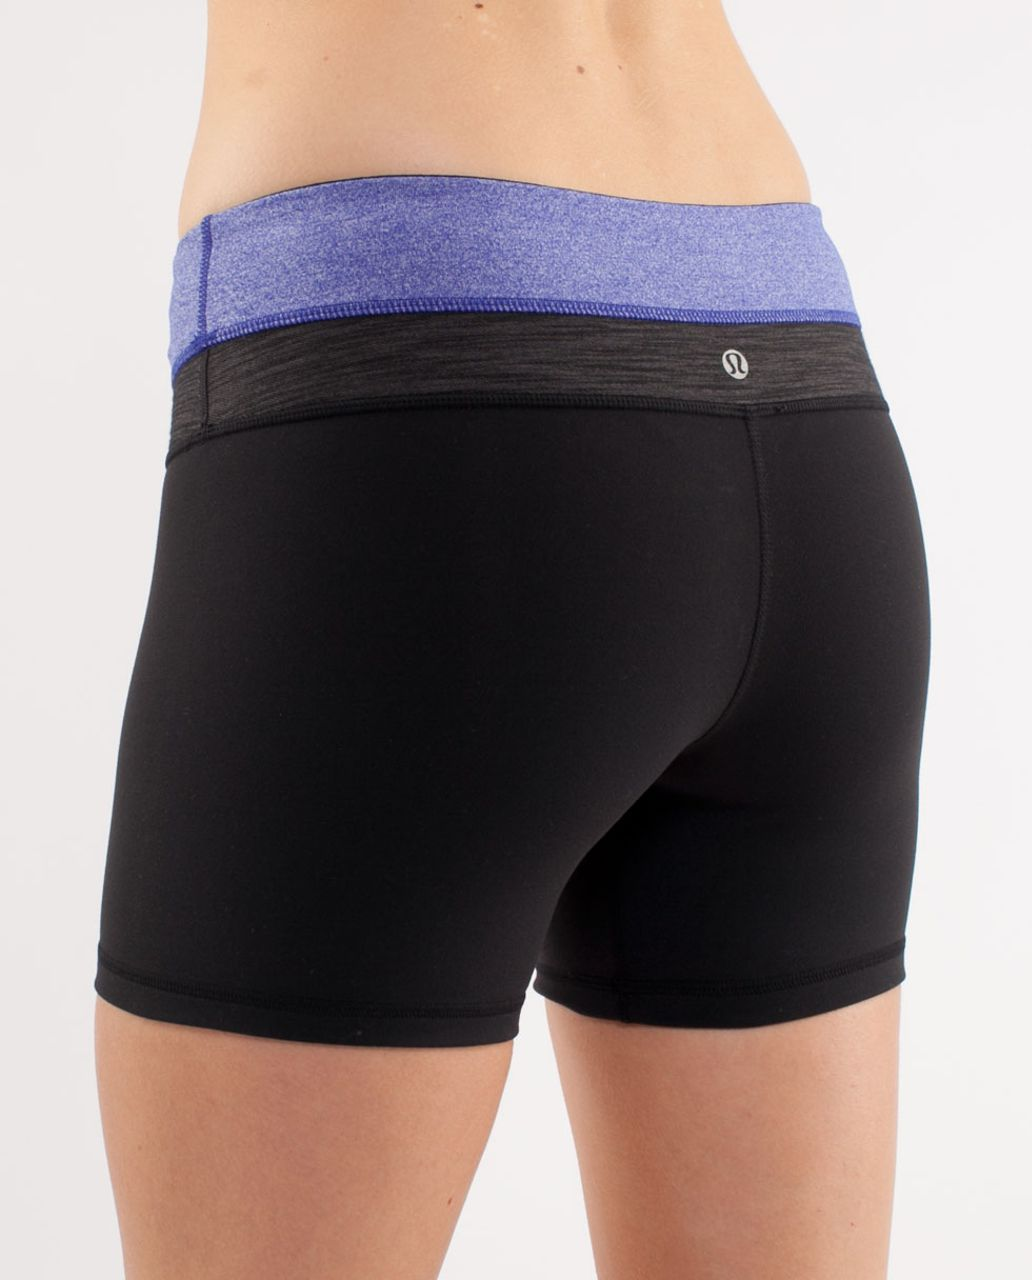 Lululemon Groove Short - Black /  Heathered Pigment Blue /  Black Deep Coal Slub Denim